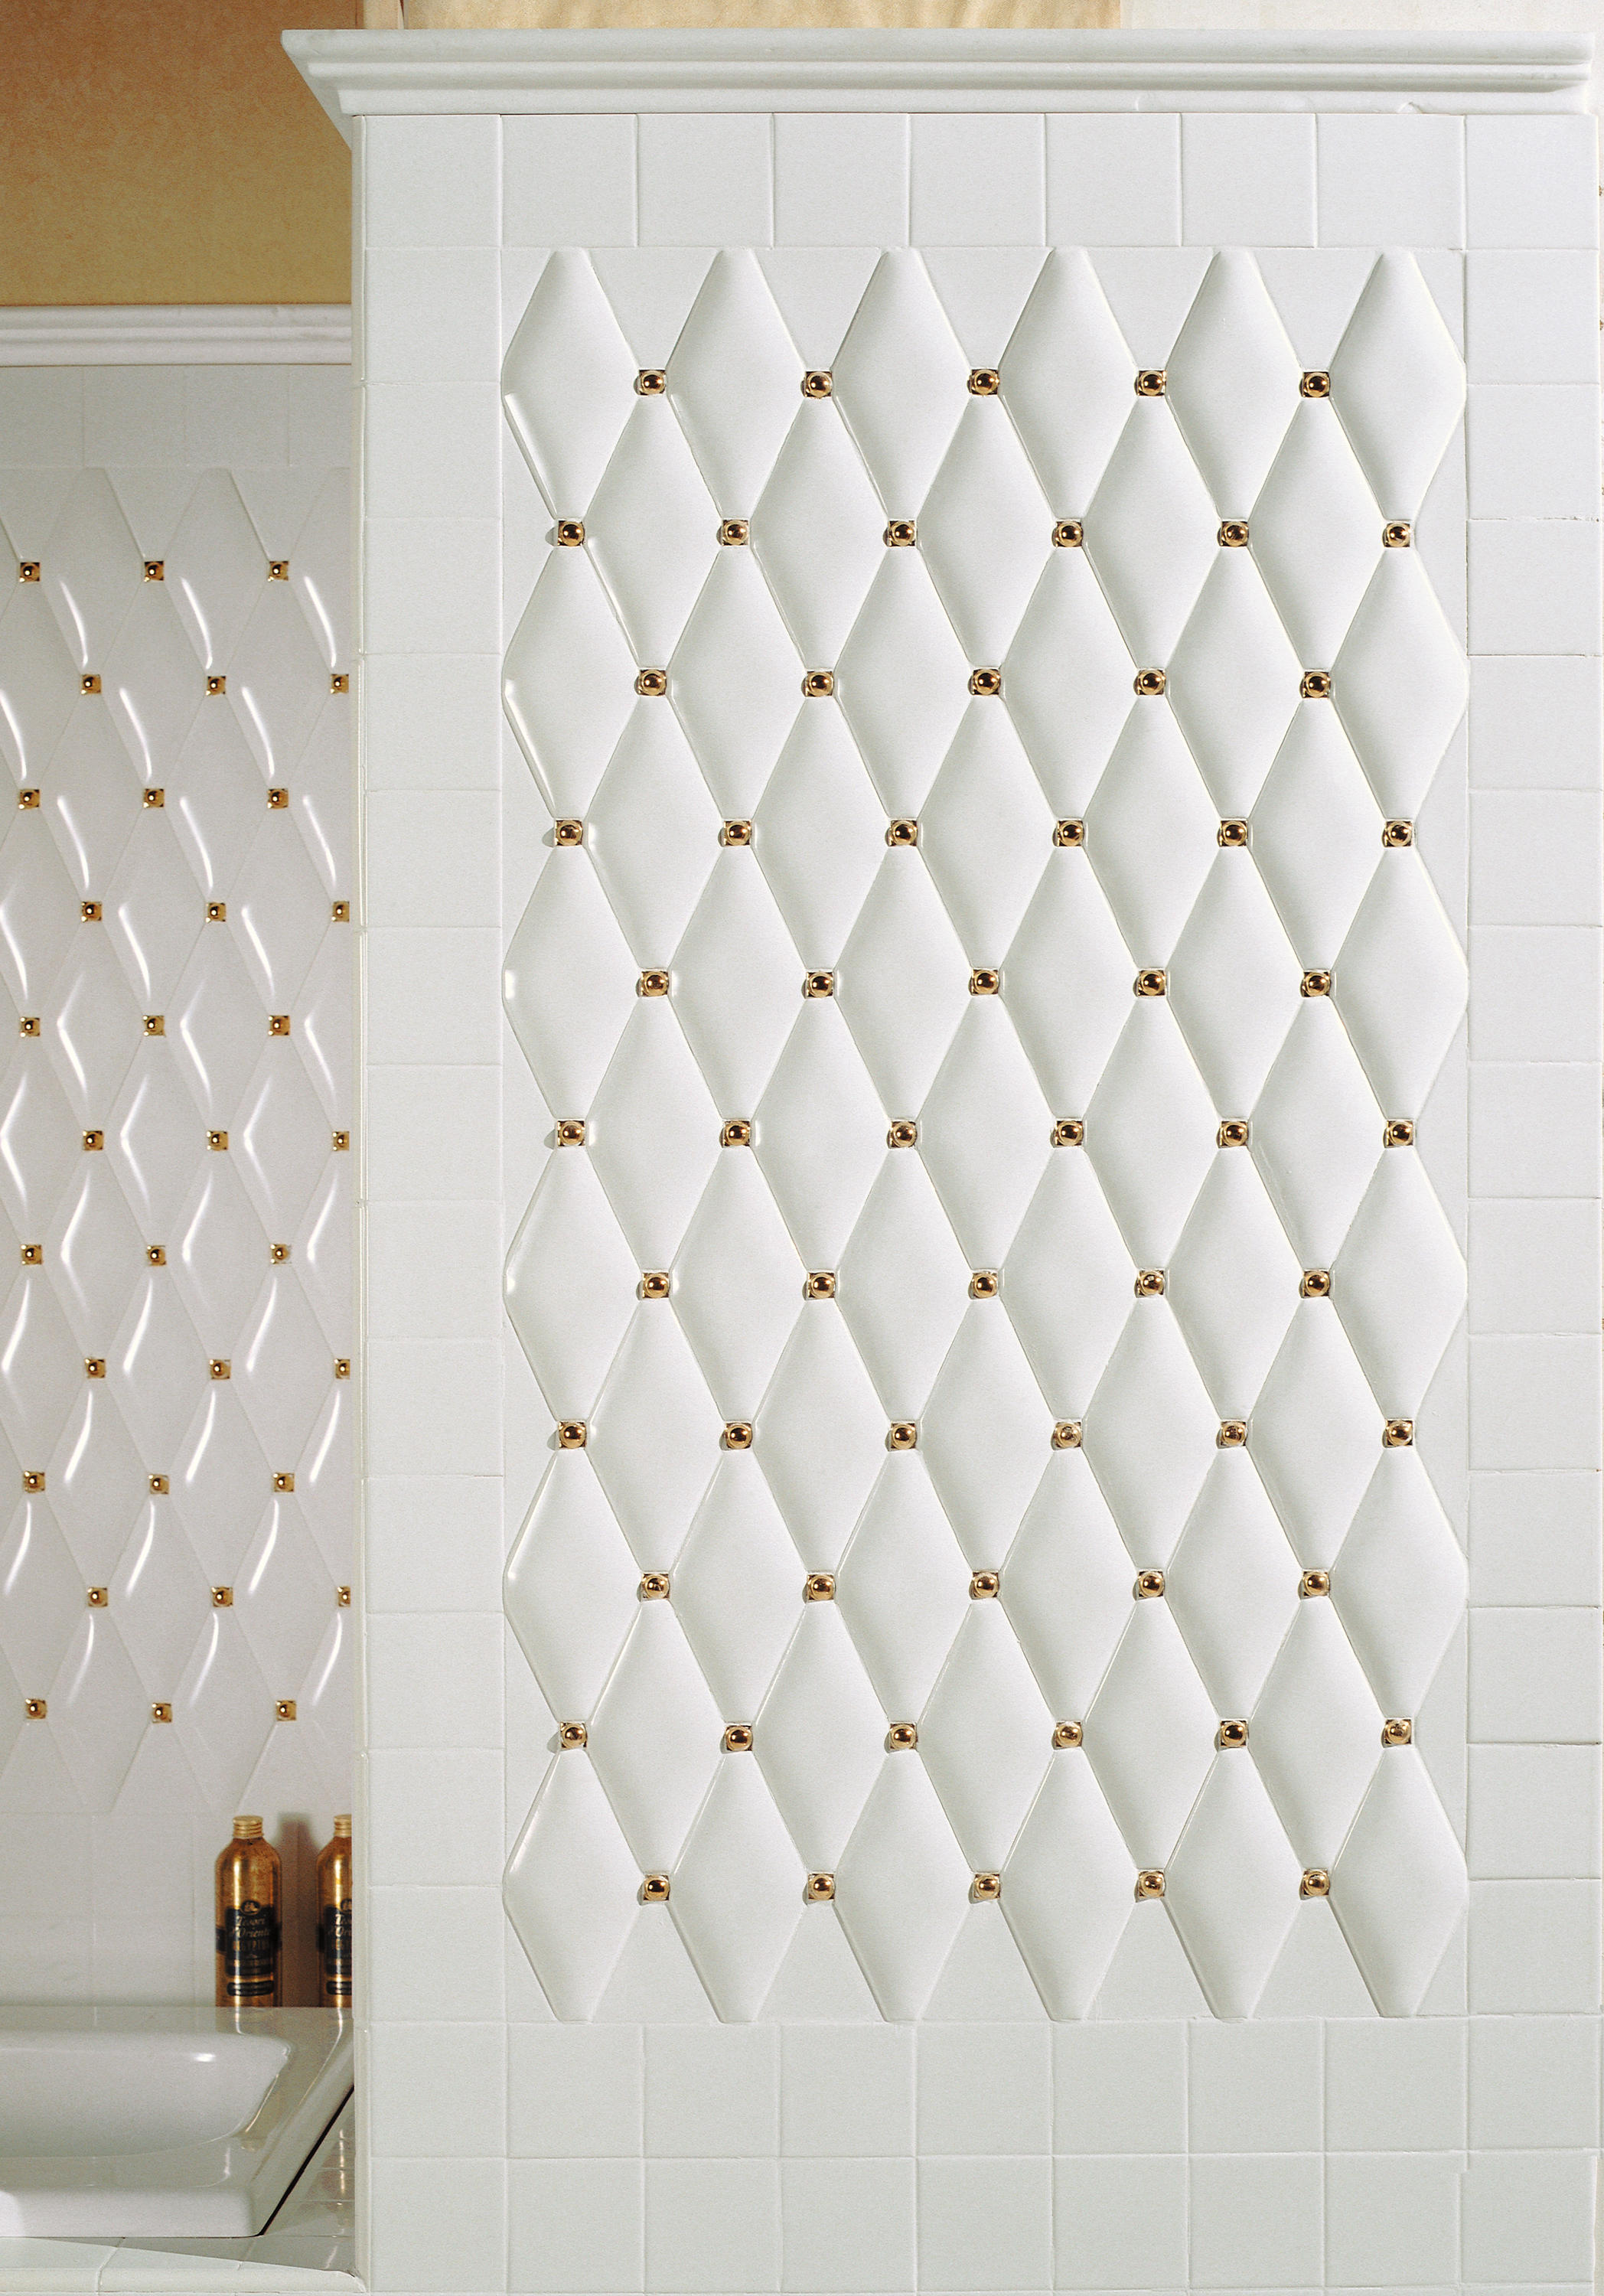 capitonn white rounded with gold inset ceramic tiles. Black Bedroom Furniture Sets. Home Design Ideas